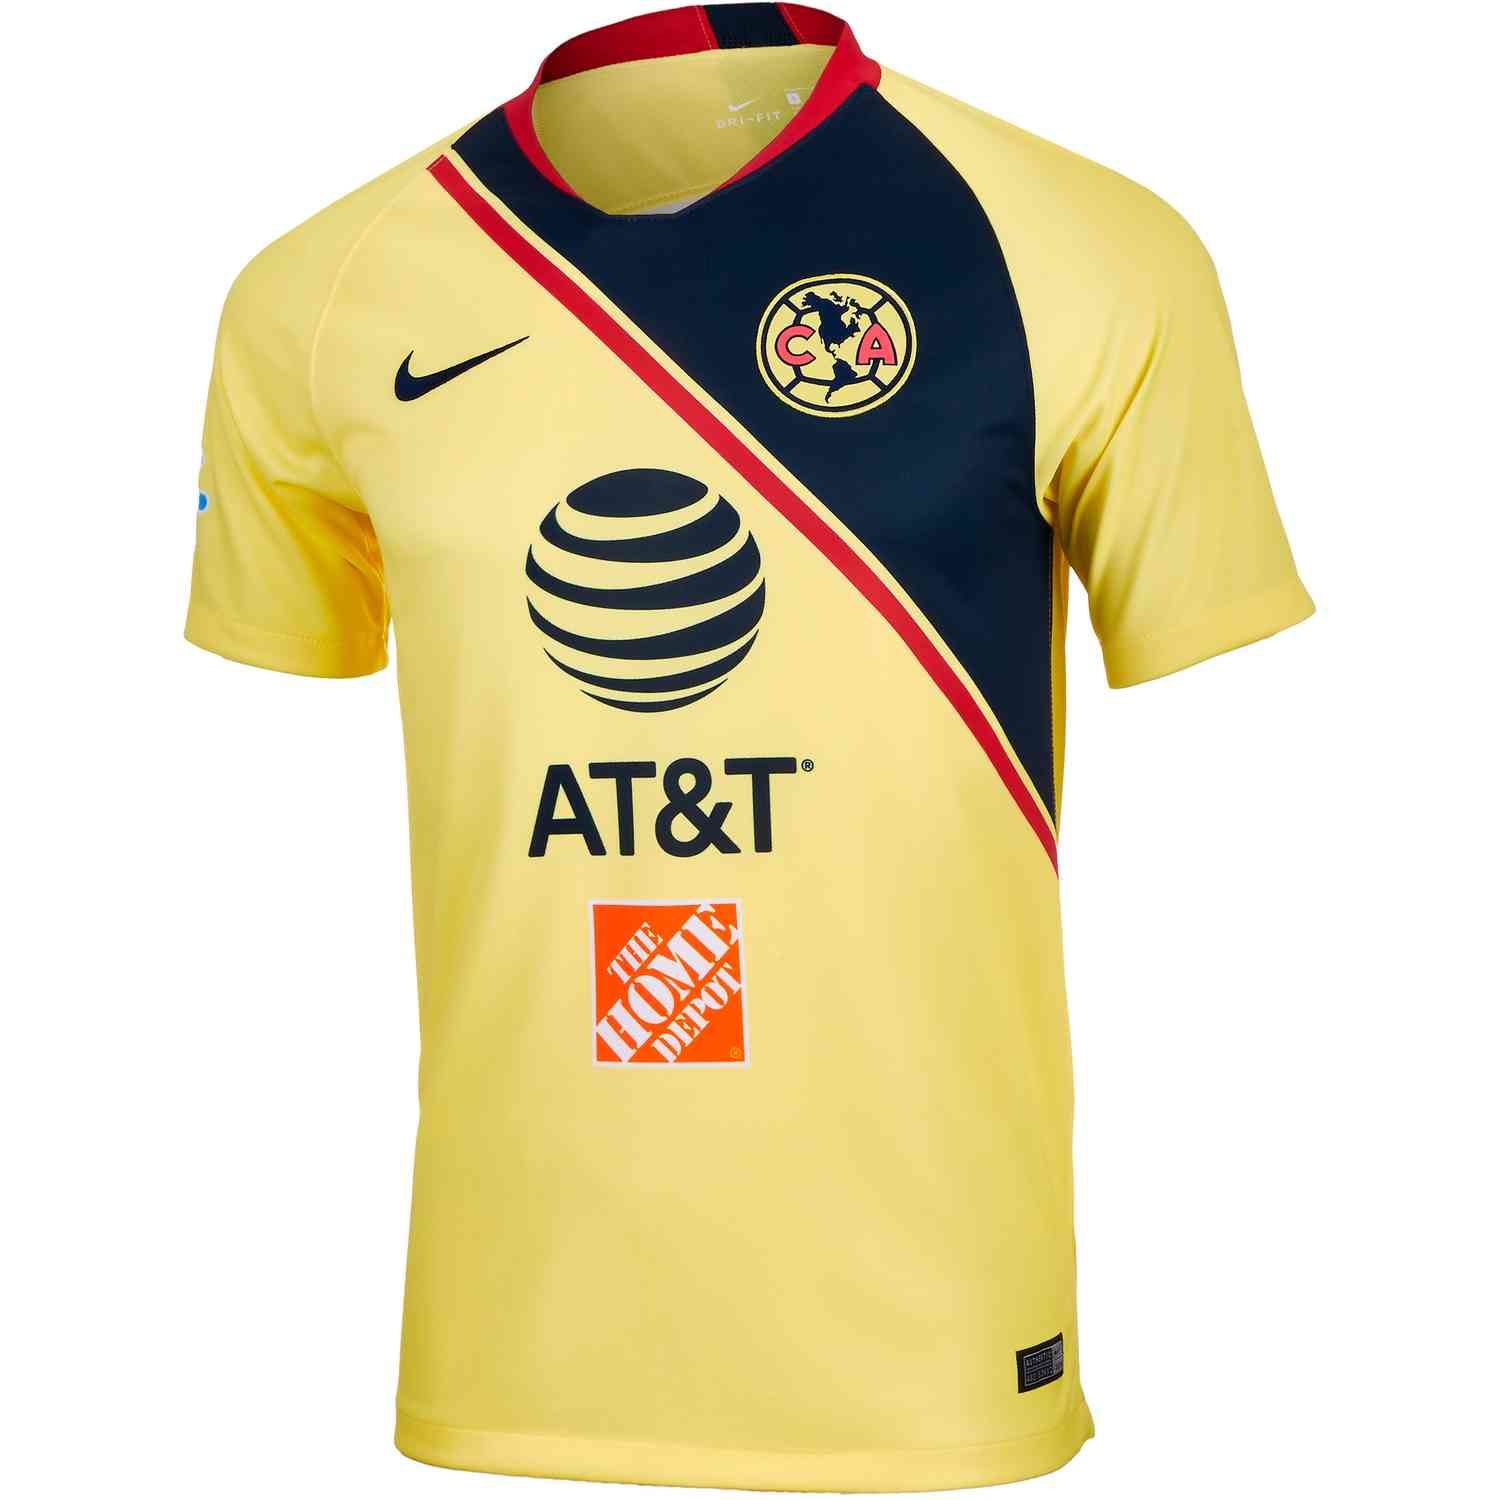 950be4b8f Nike Club America Home Jersey - Lemon Chiffon Gym Red Armory Navy ...